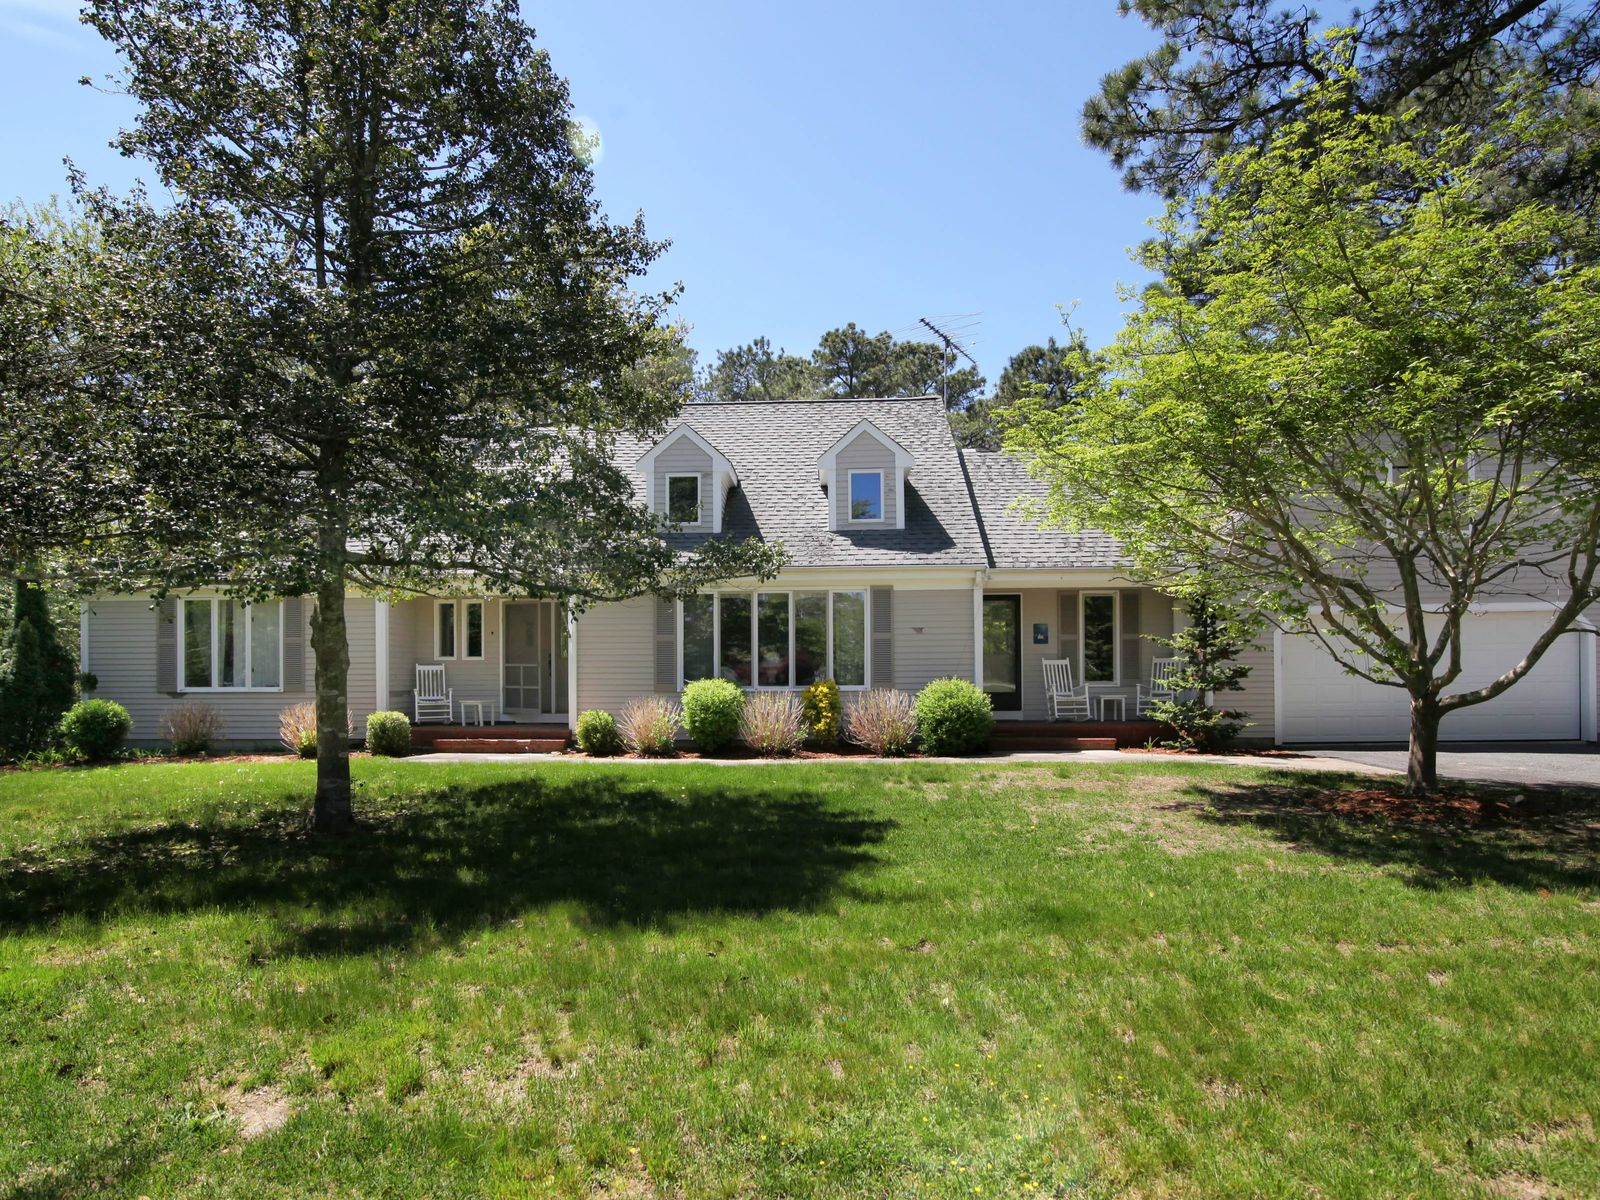 Indian Lakes Four Bedroom, Marstons Mills MA Single Family Home - Cape Cod Real Estate